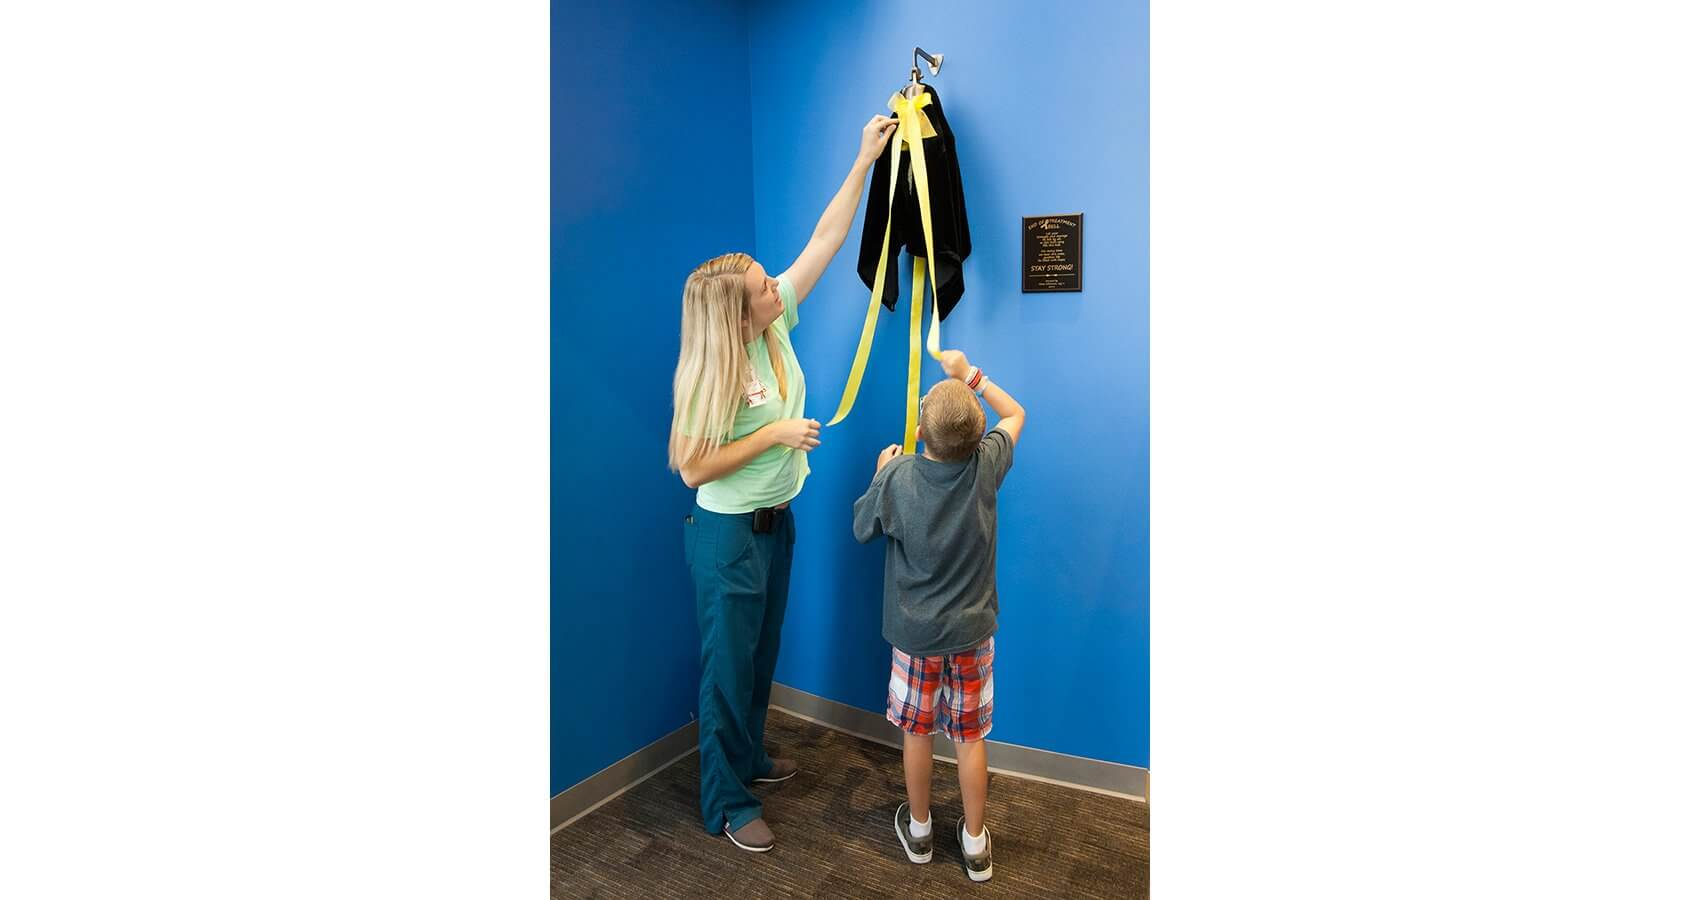 Ethan Williamson and Nicolle Eighmy, child life specialist at Texas Children's Cancer and Hematology Centers, unveil the end of treatment bell. (Credit: John R. Lewis Photography)